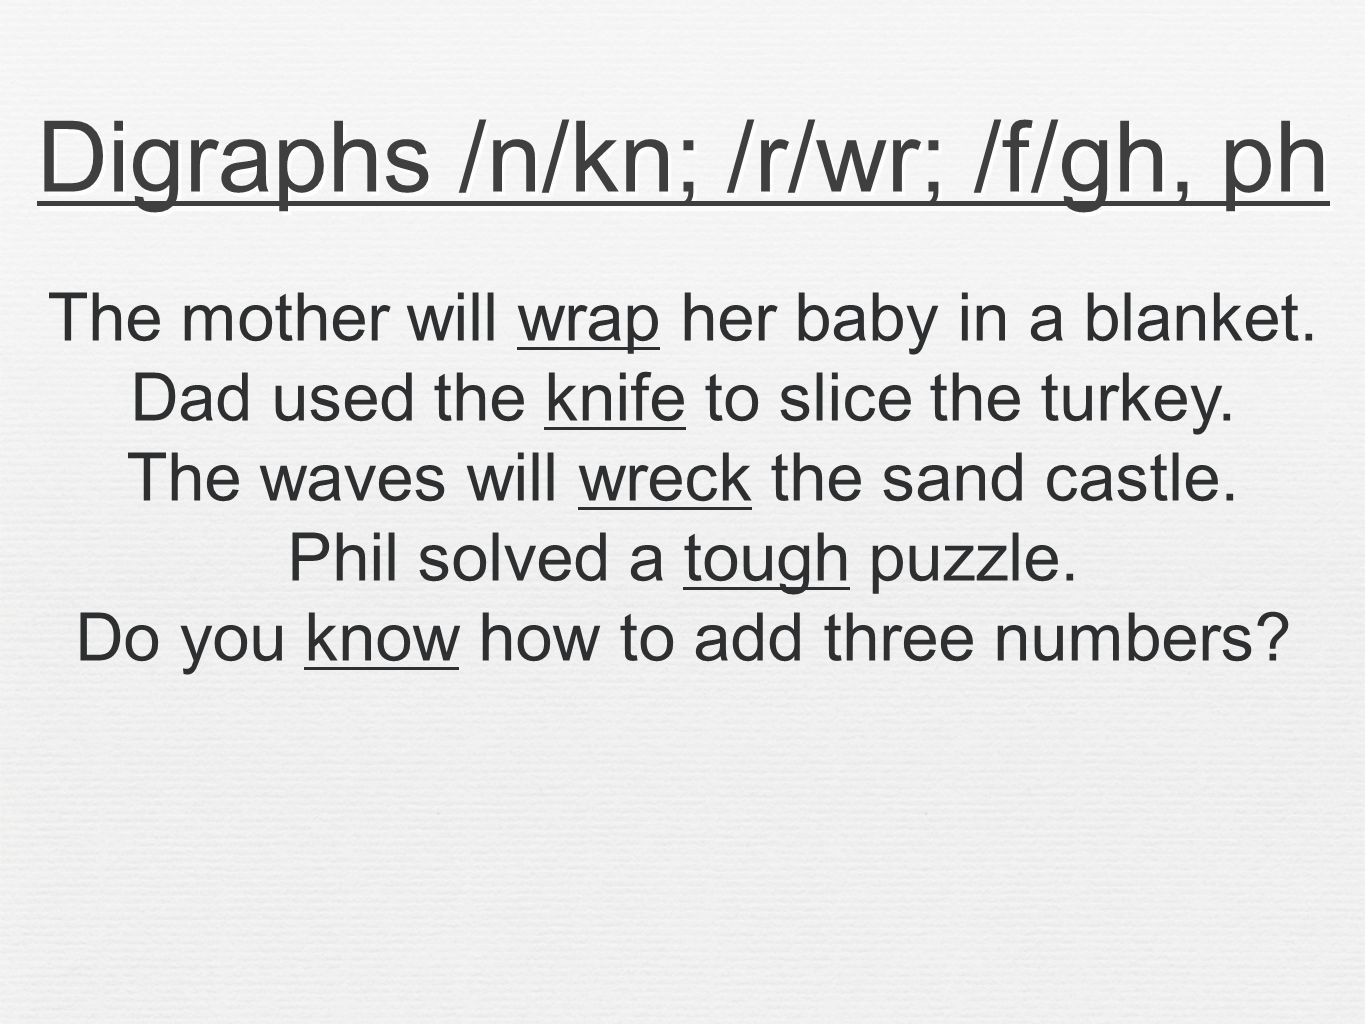 Digraphs /n/kn; /r/wr; /f/gh, ph The mother will wrap her baby in a blanket.